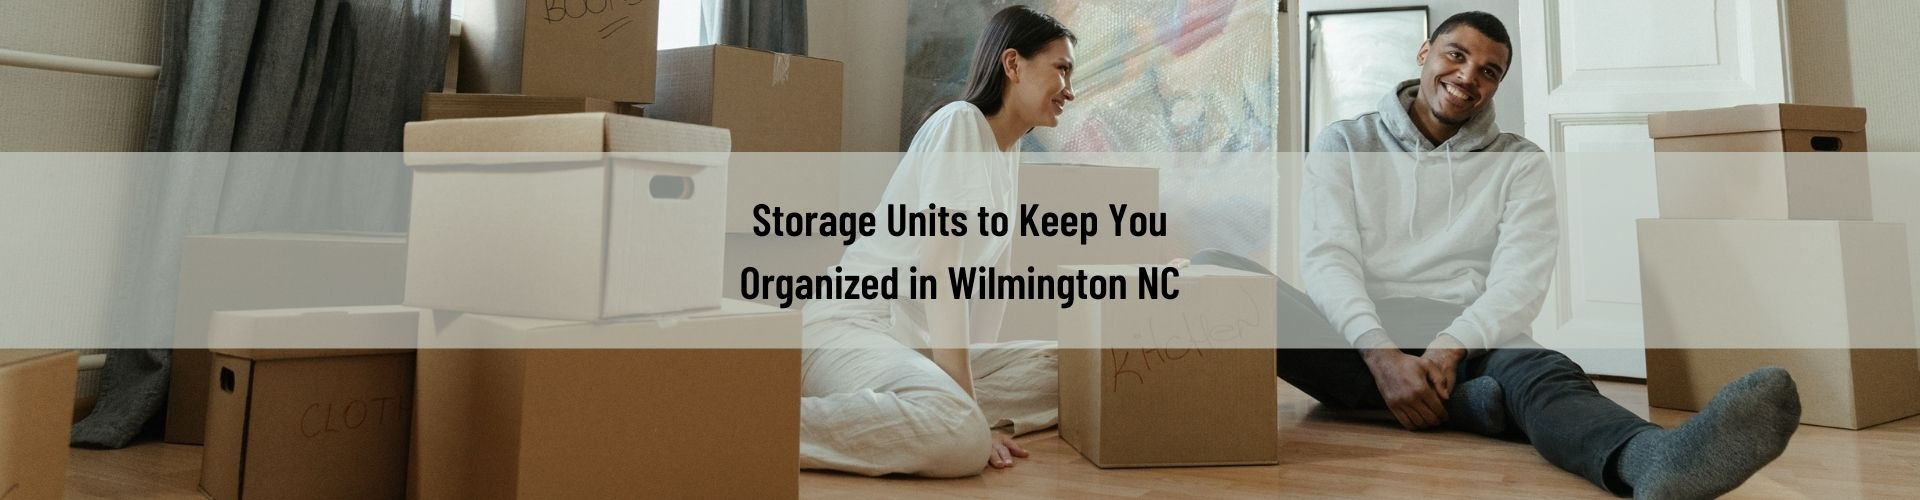 Storage Units in Wilmington NC